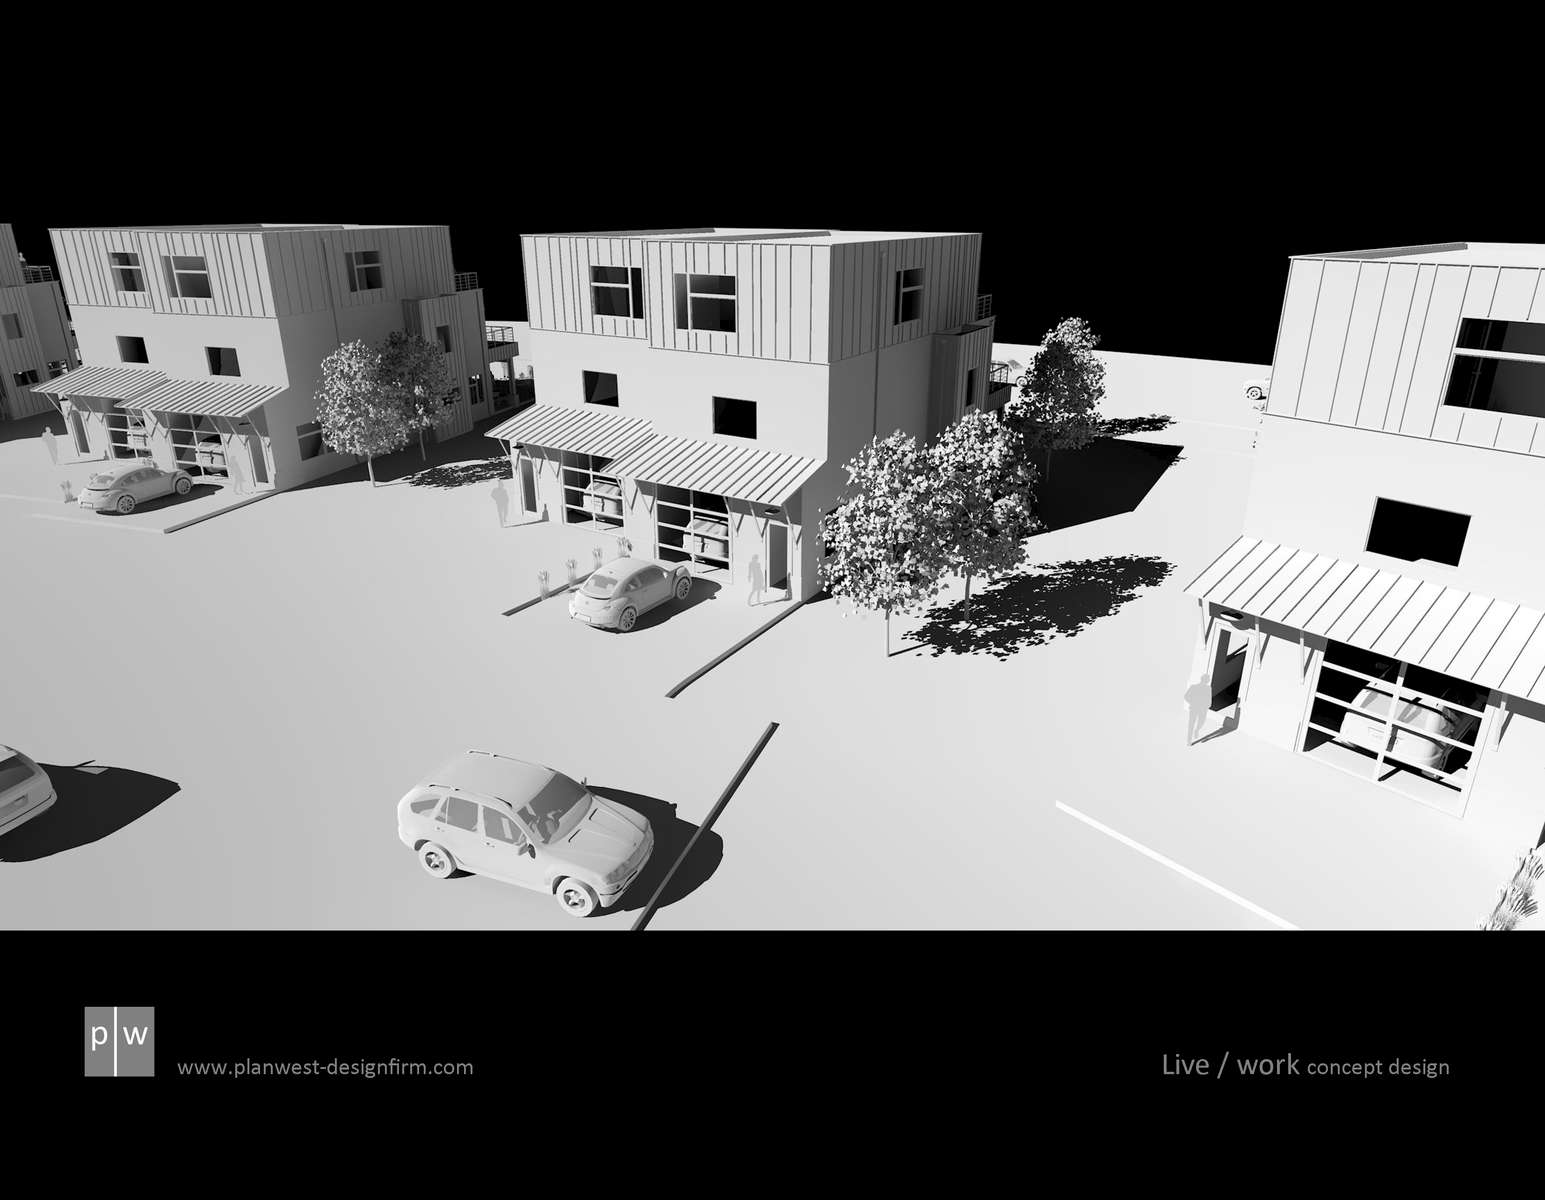 plan-west-design-firm-_-projects-in-process-706